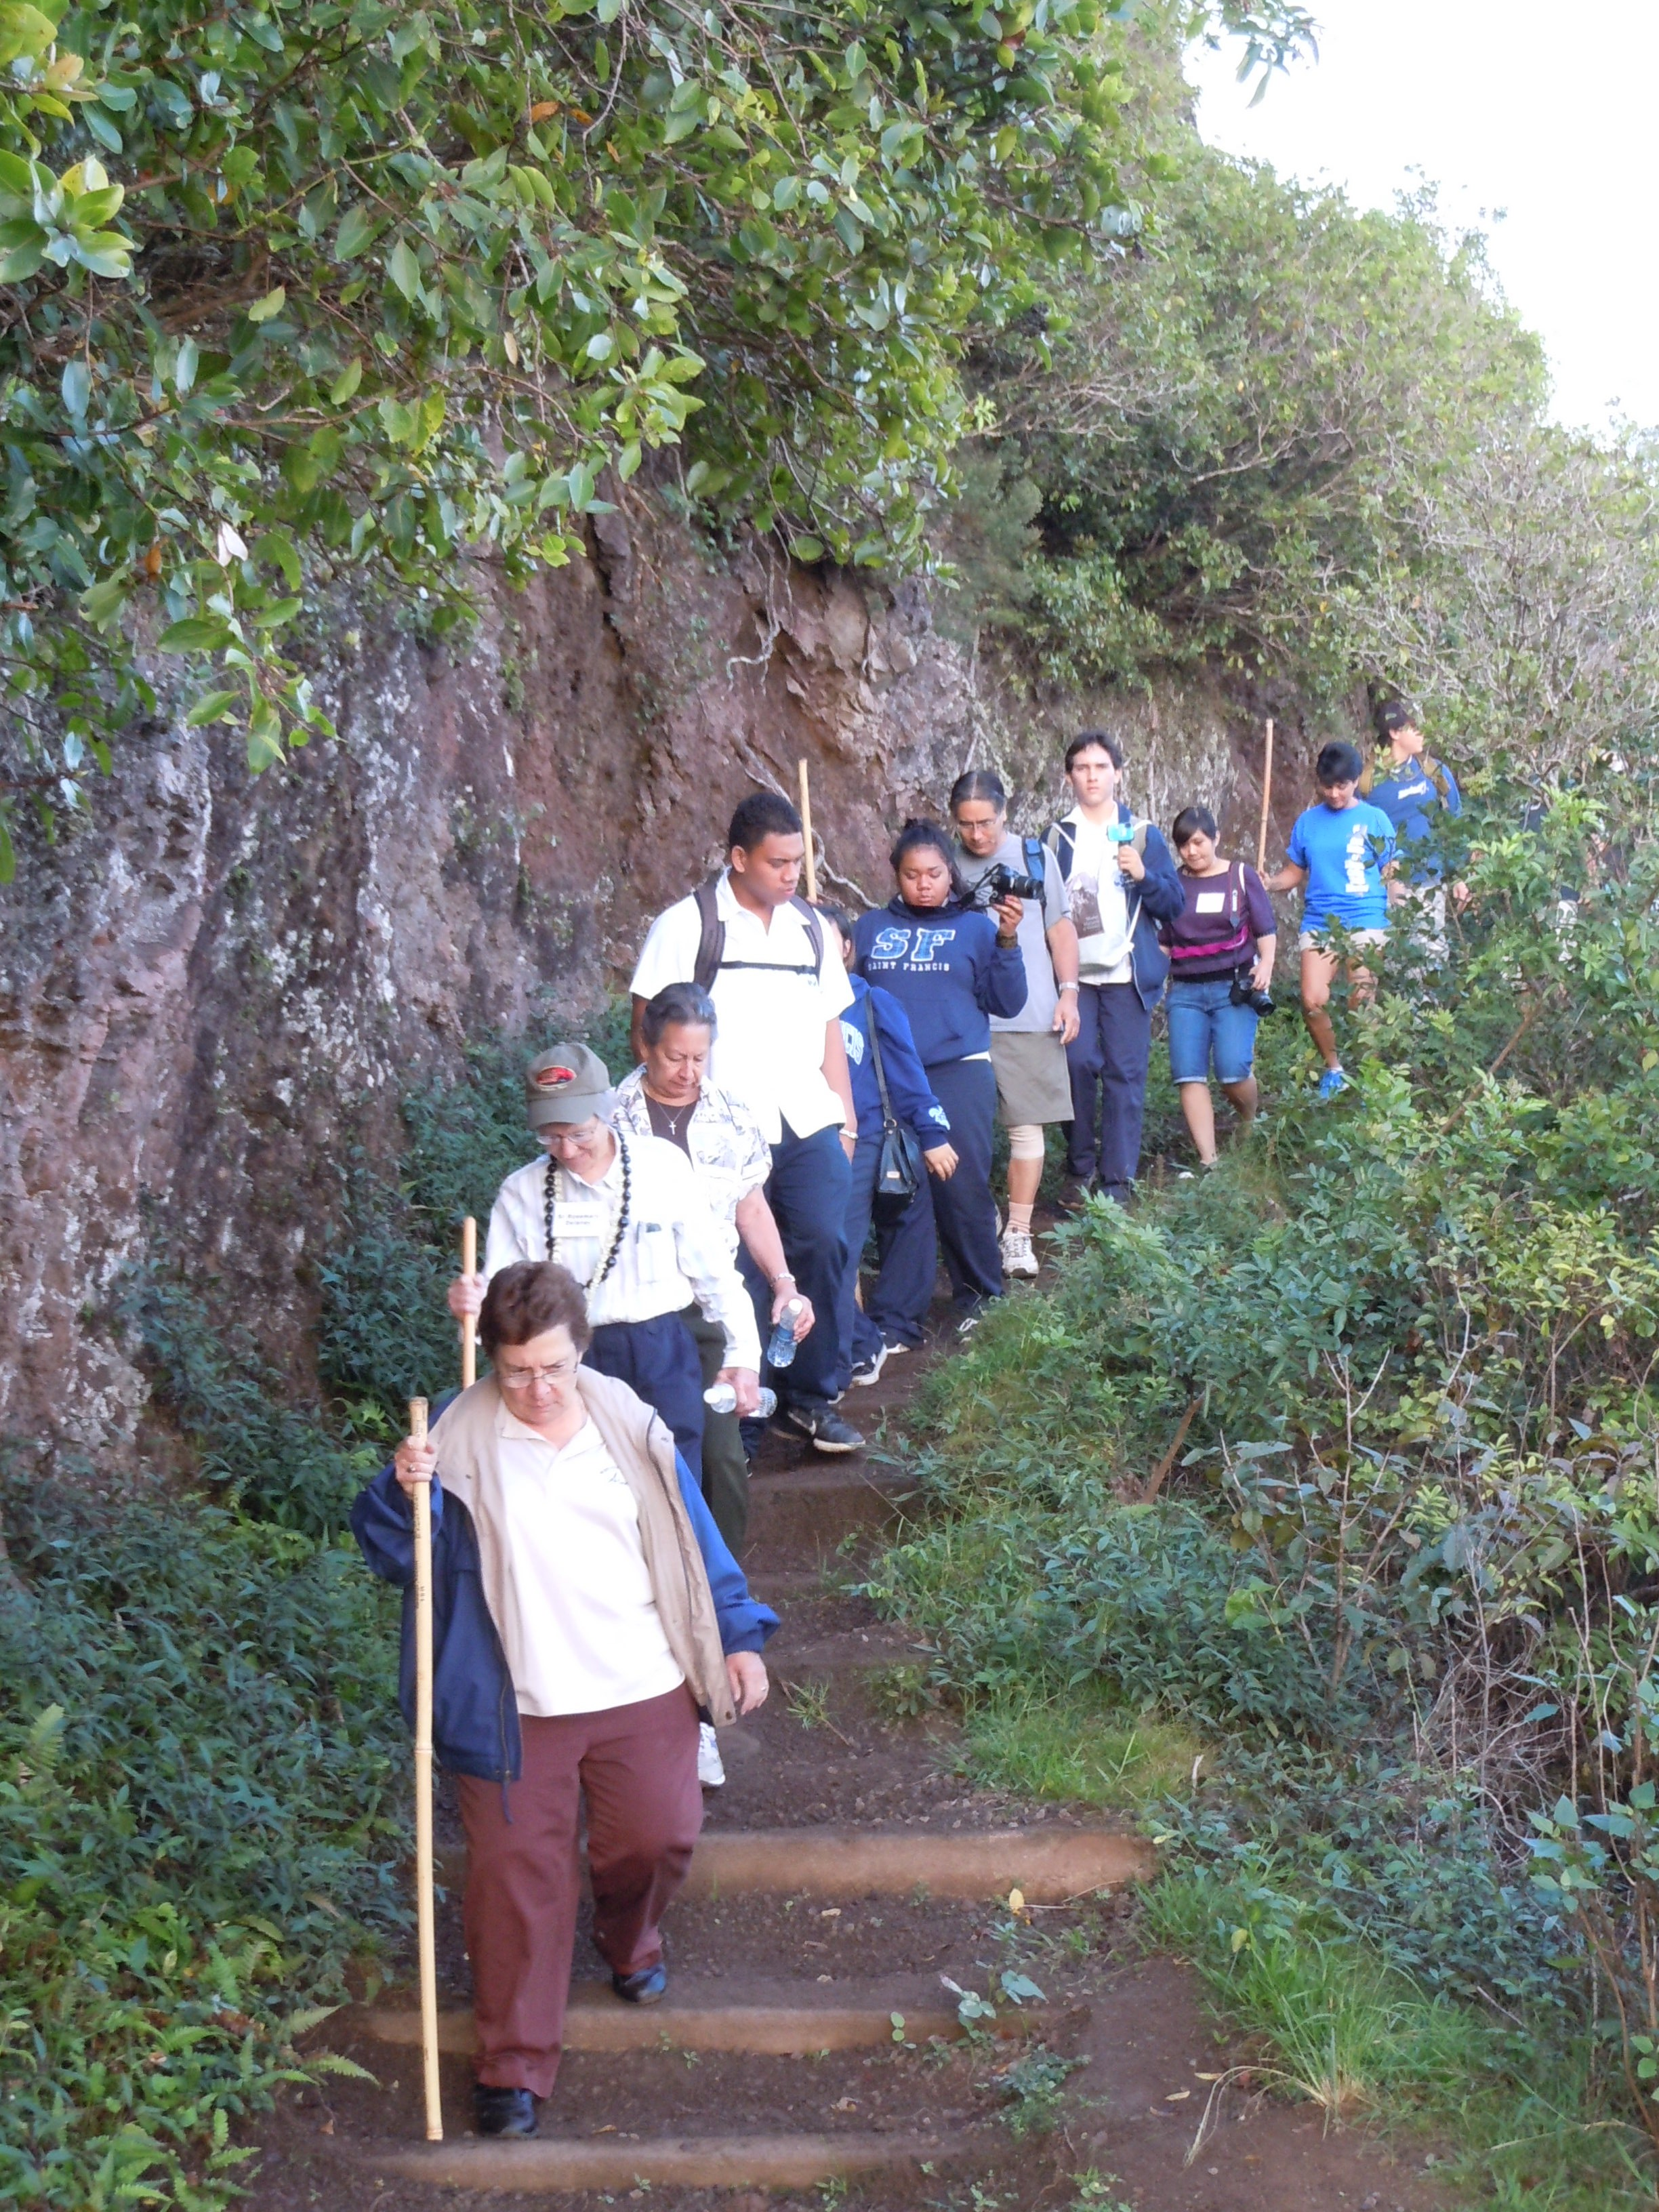 A group of Franciscan sisters, students from St. Francis High School on Oahu, and a few Molokai residents hiked with the relic down to Kalaupapa. Photo by Catherine Cluett